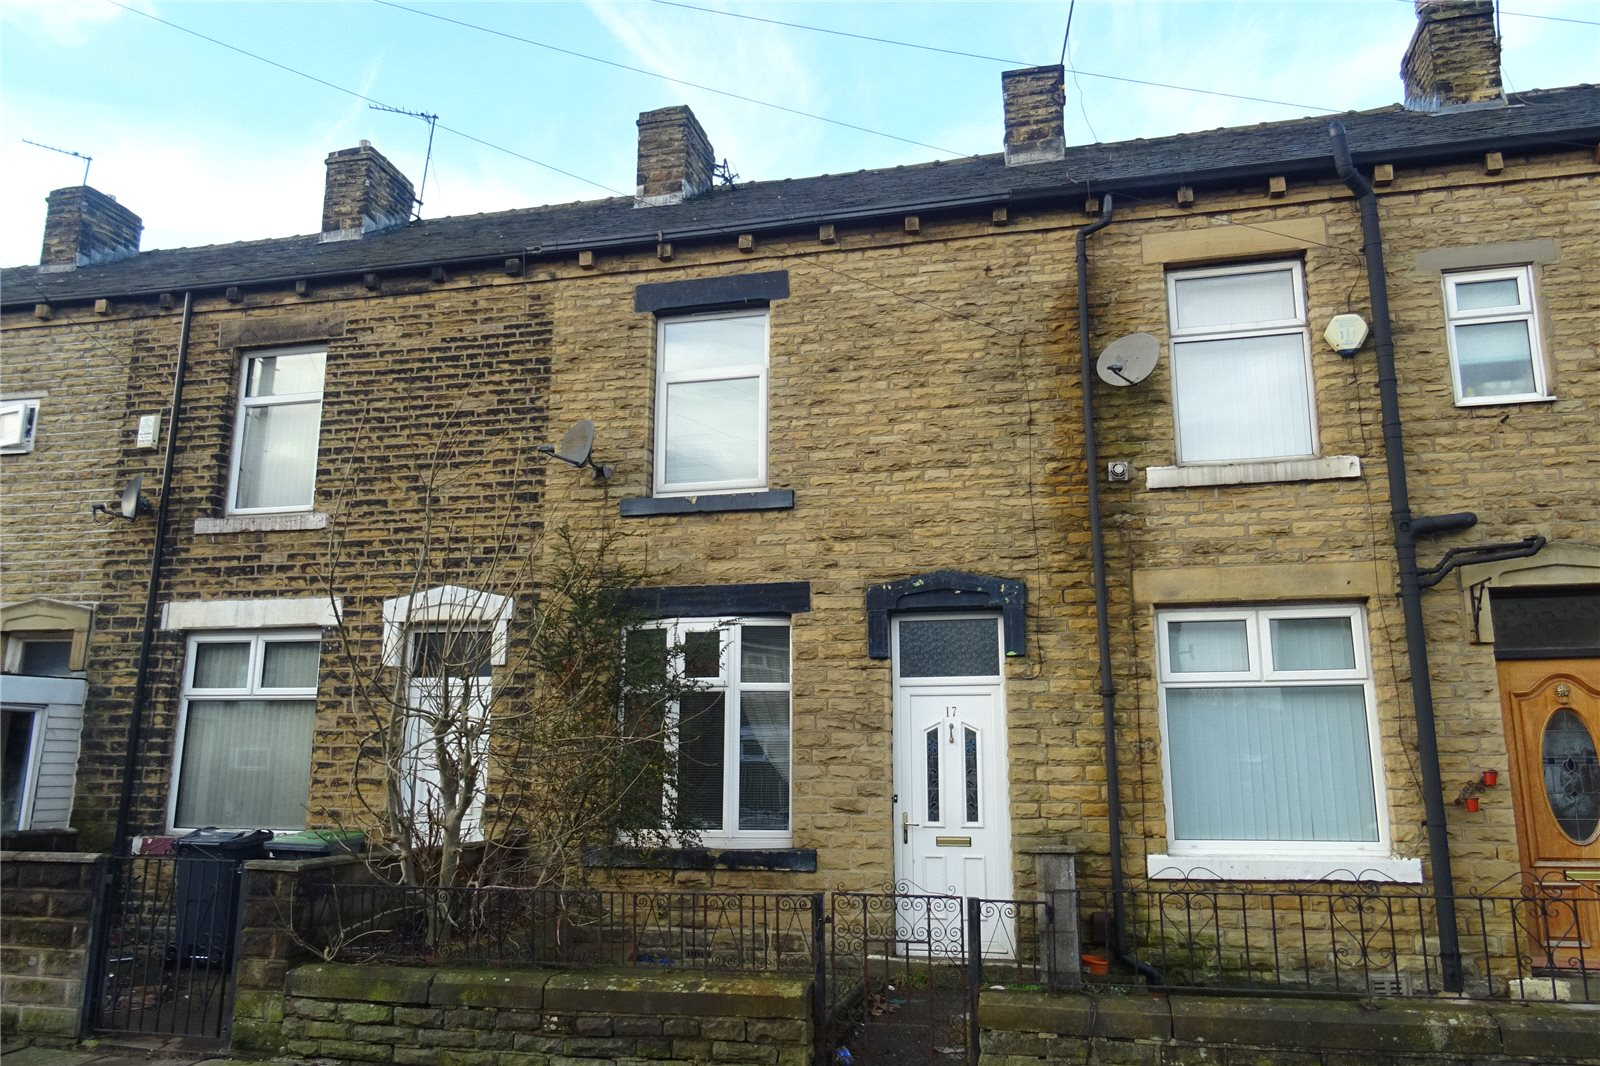 Yorkshire Terrace: Whitegates Bradford 2 Bedroom House For Sale In Sandygate